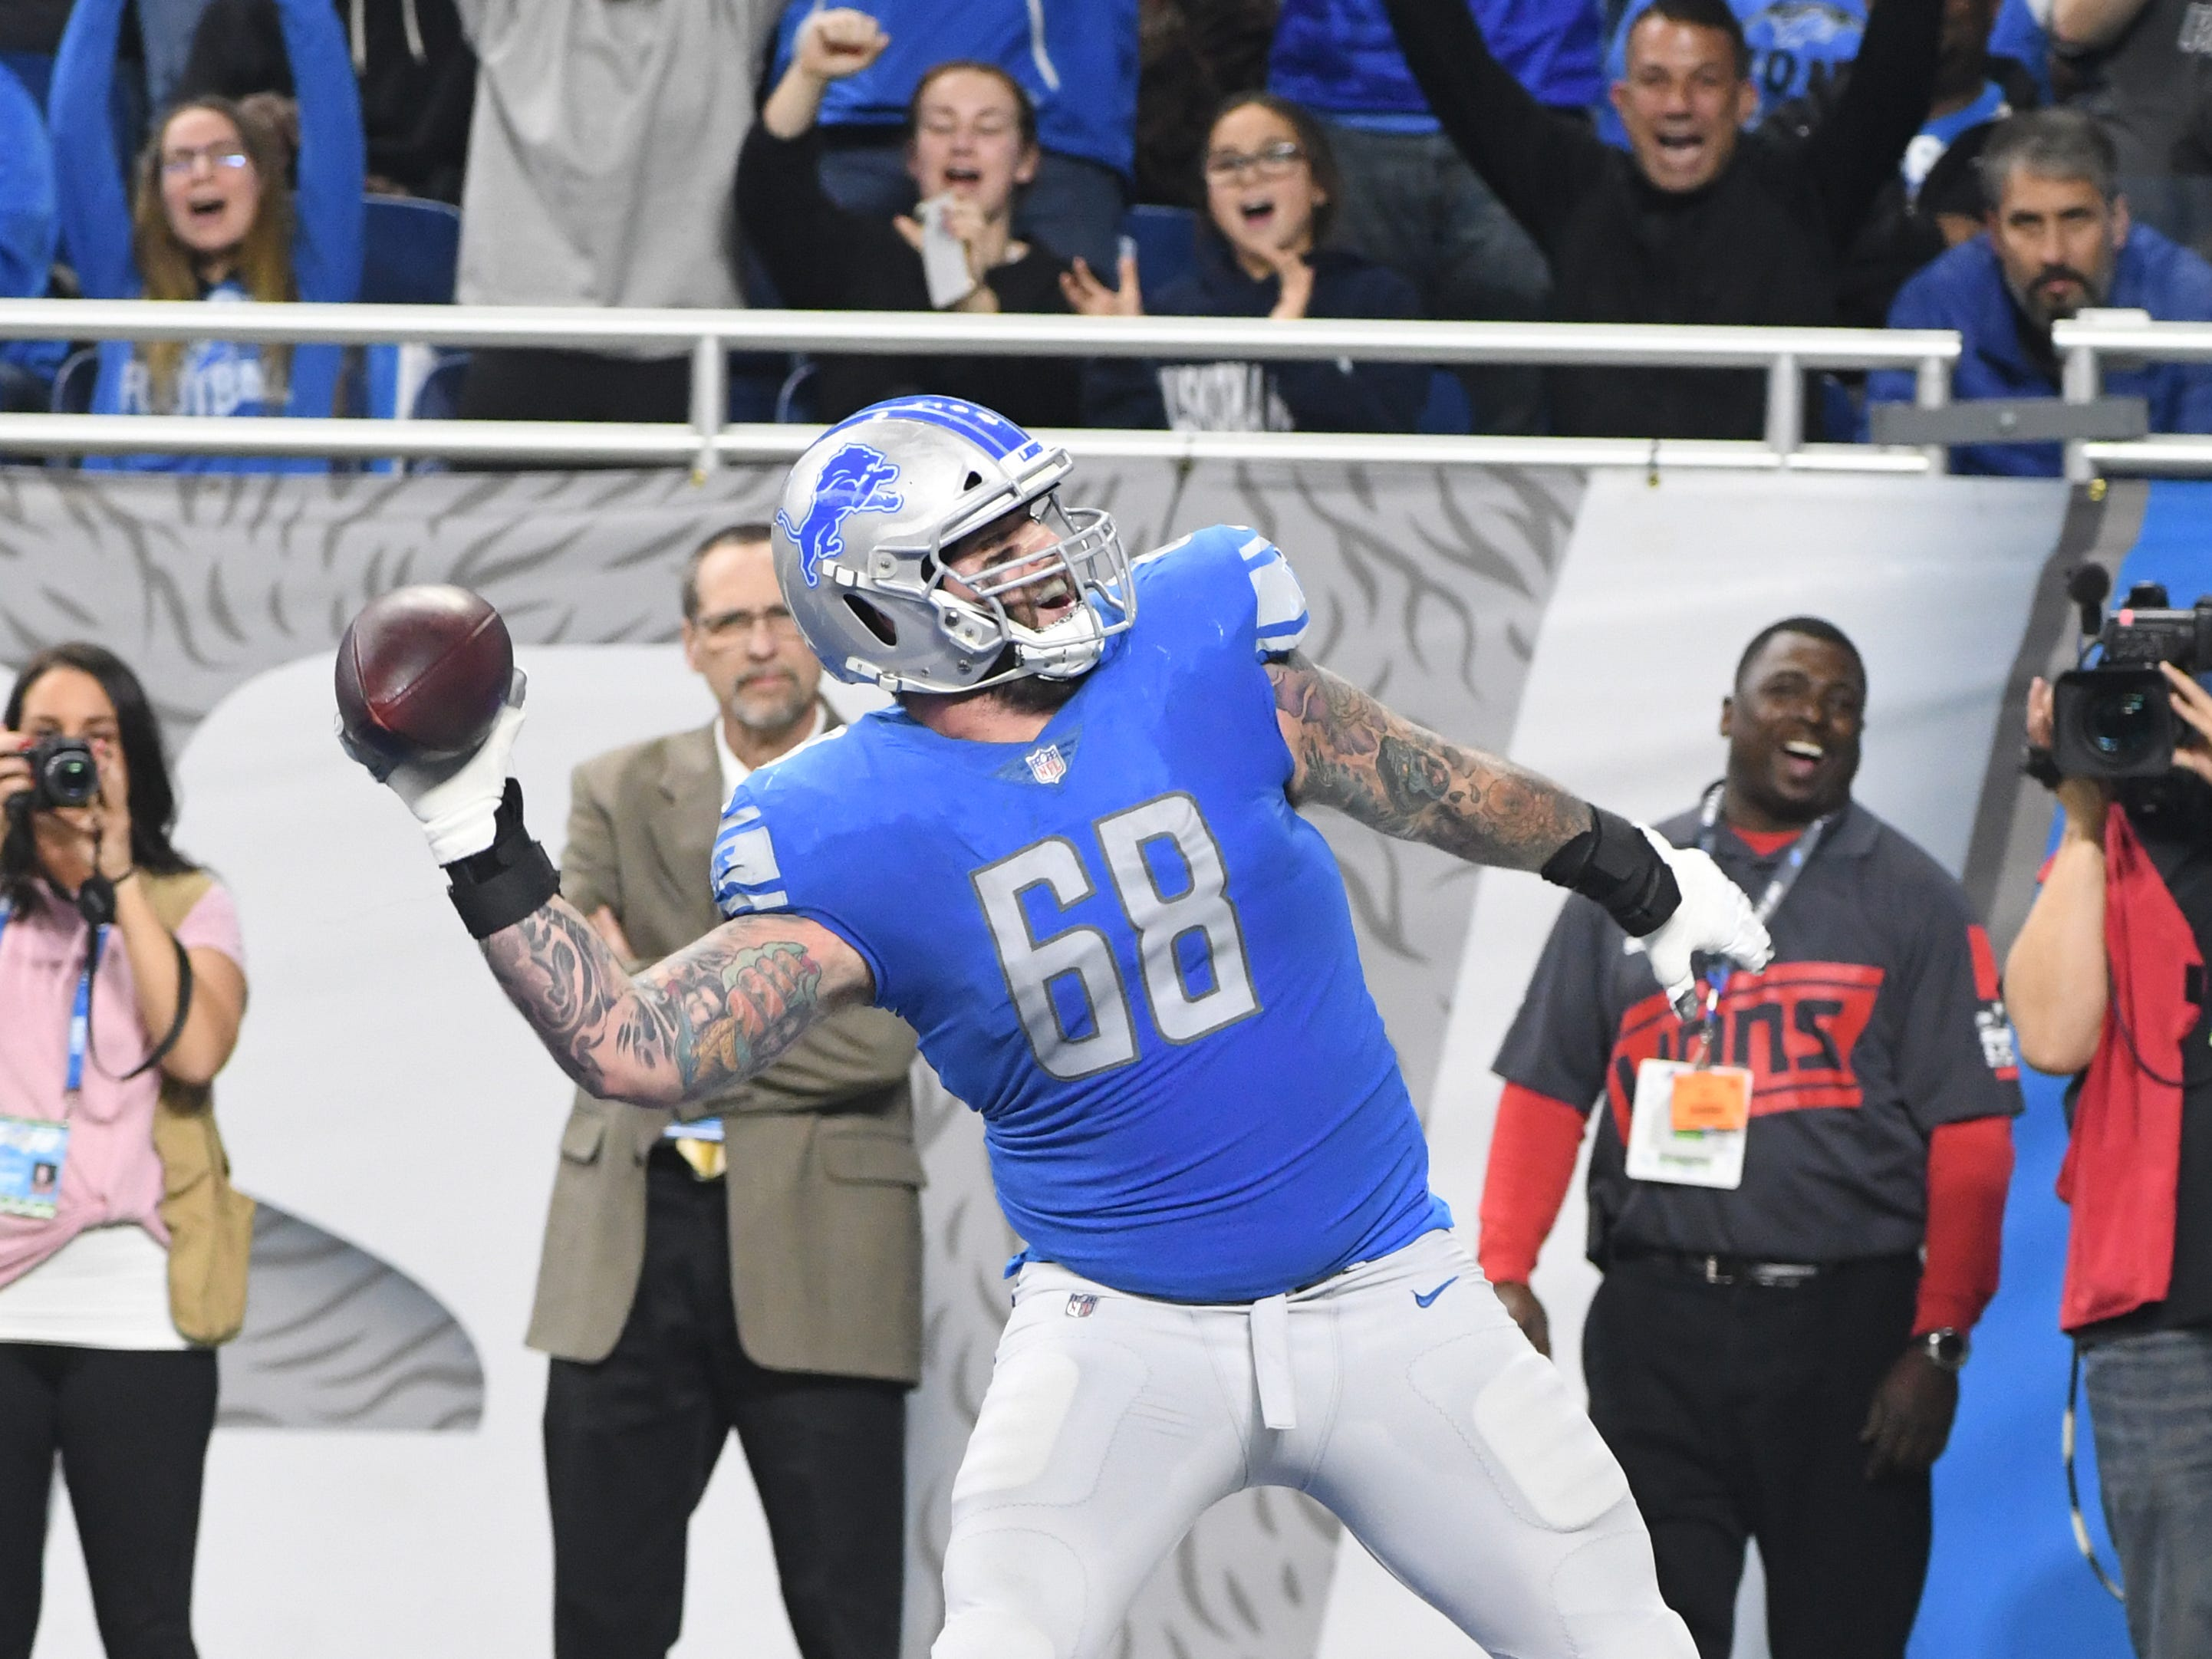 Lions' Taylor Decker throws his touchdown ball into the crowd after scoring in the third quarter.